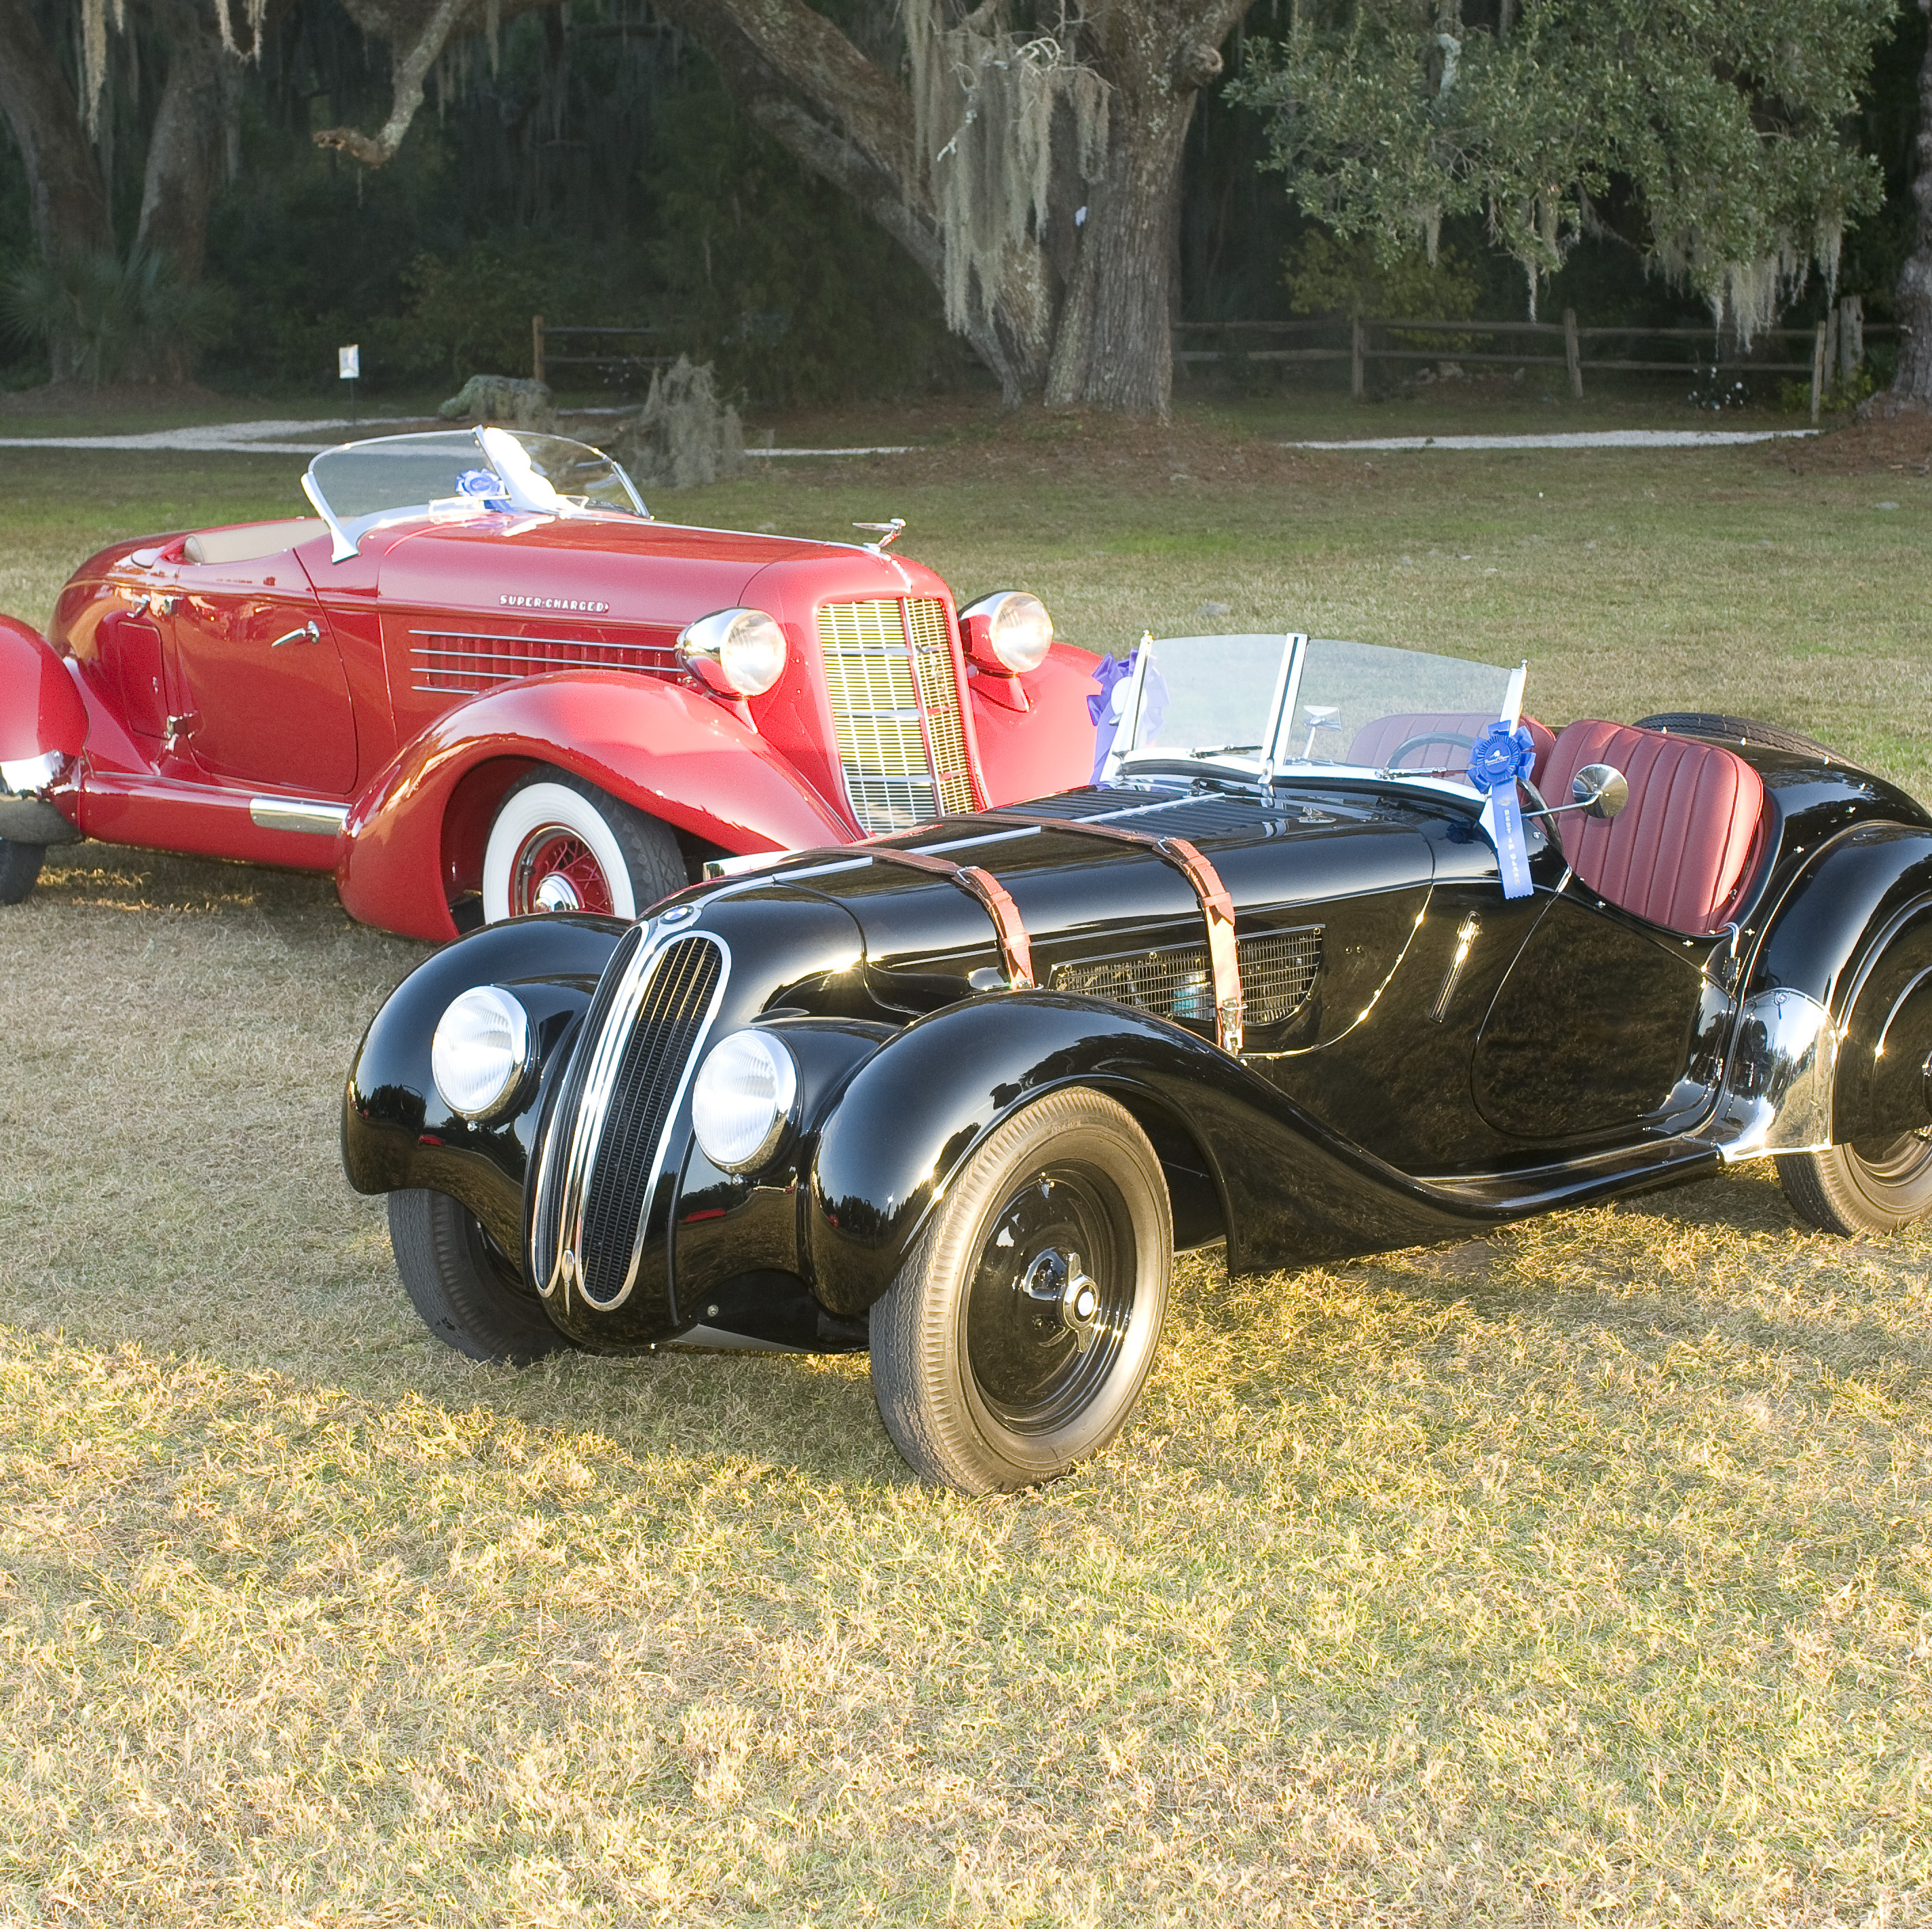 HHI Motoring Festival & Concours